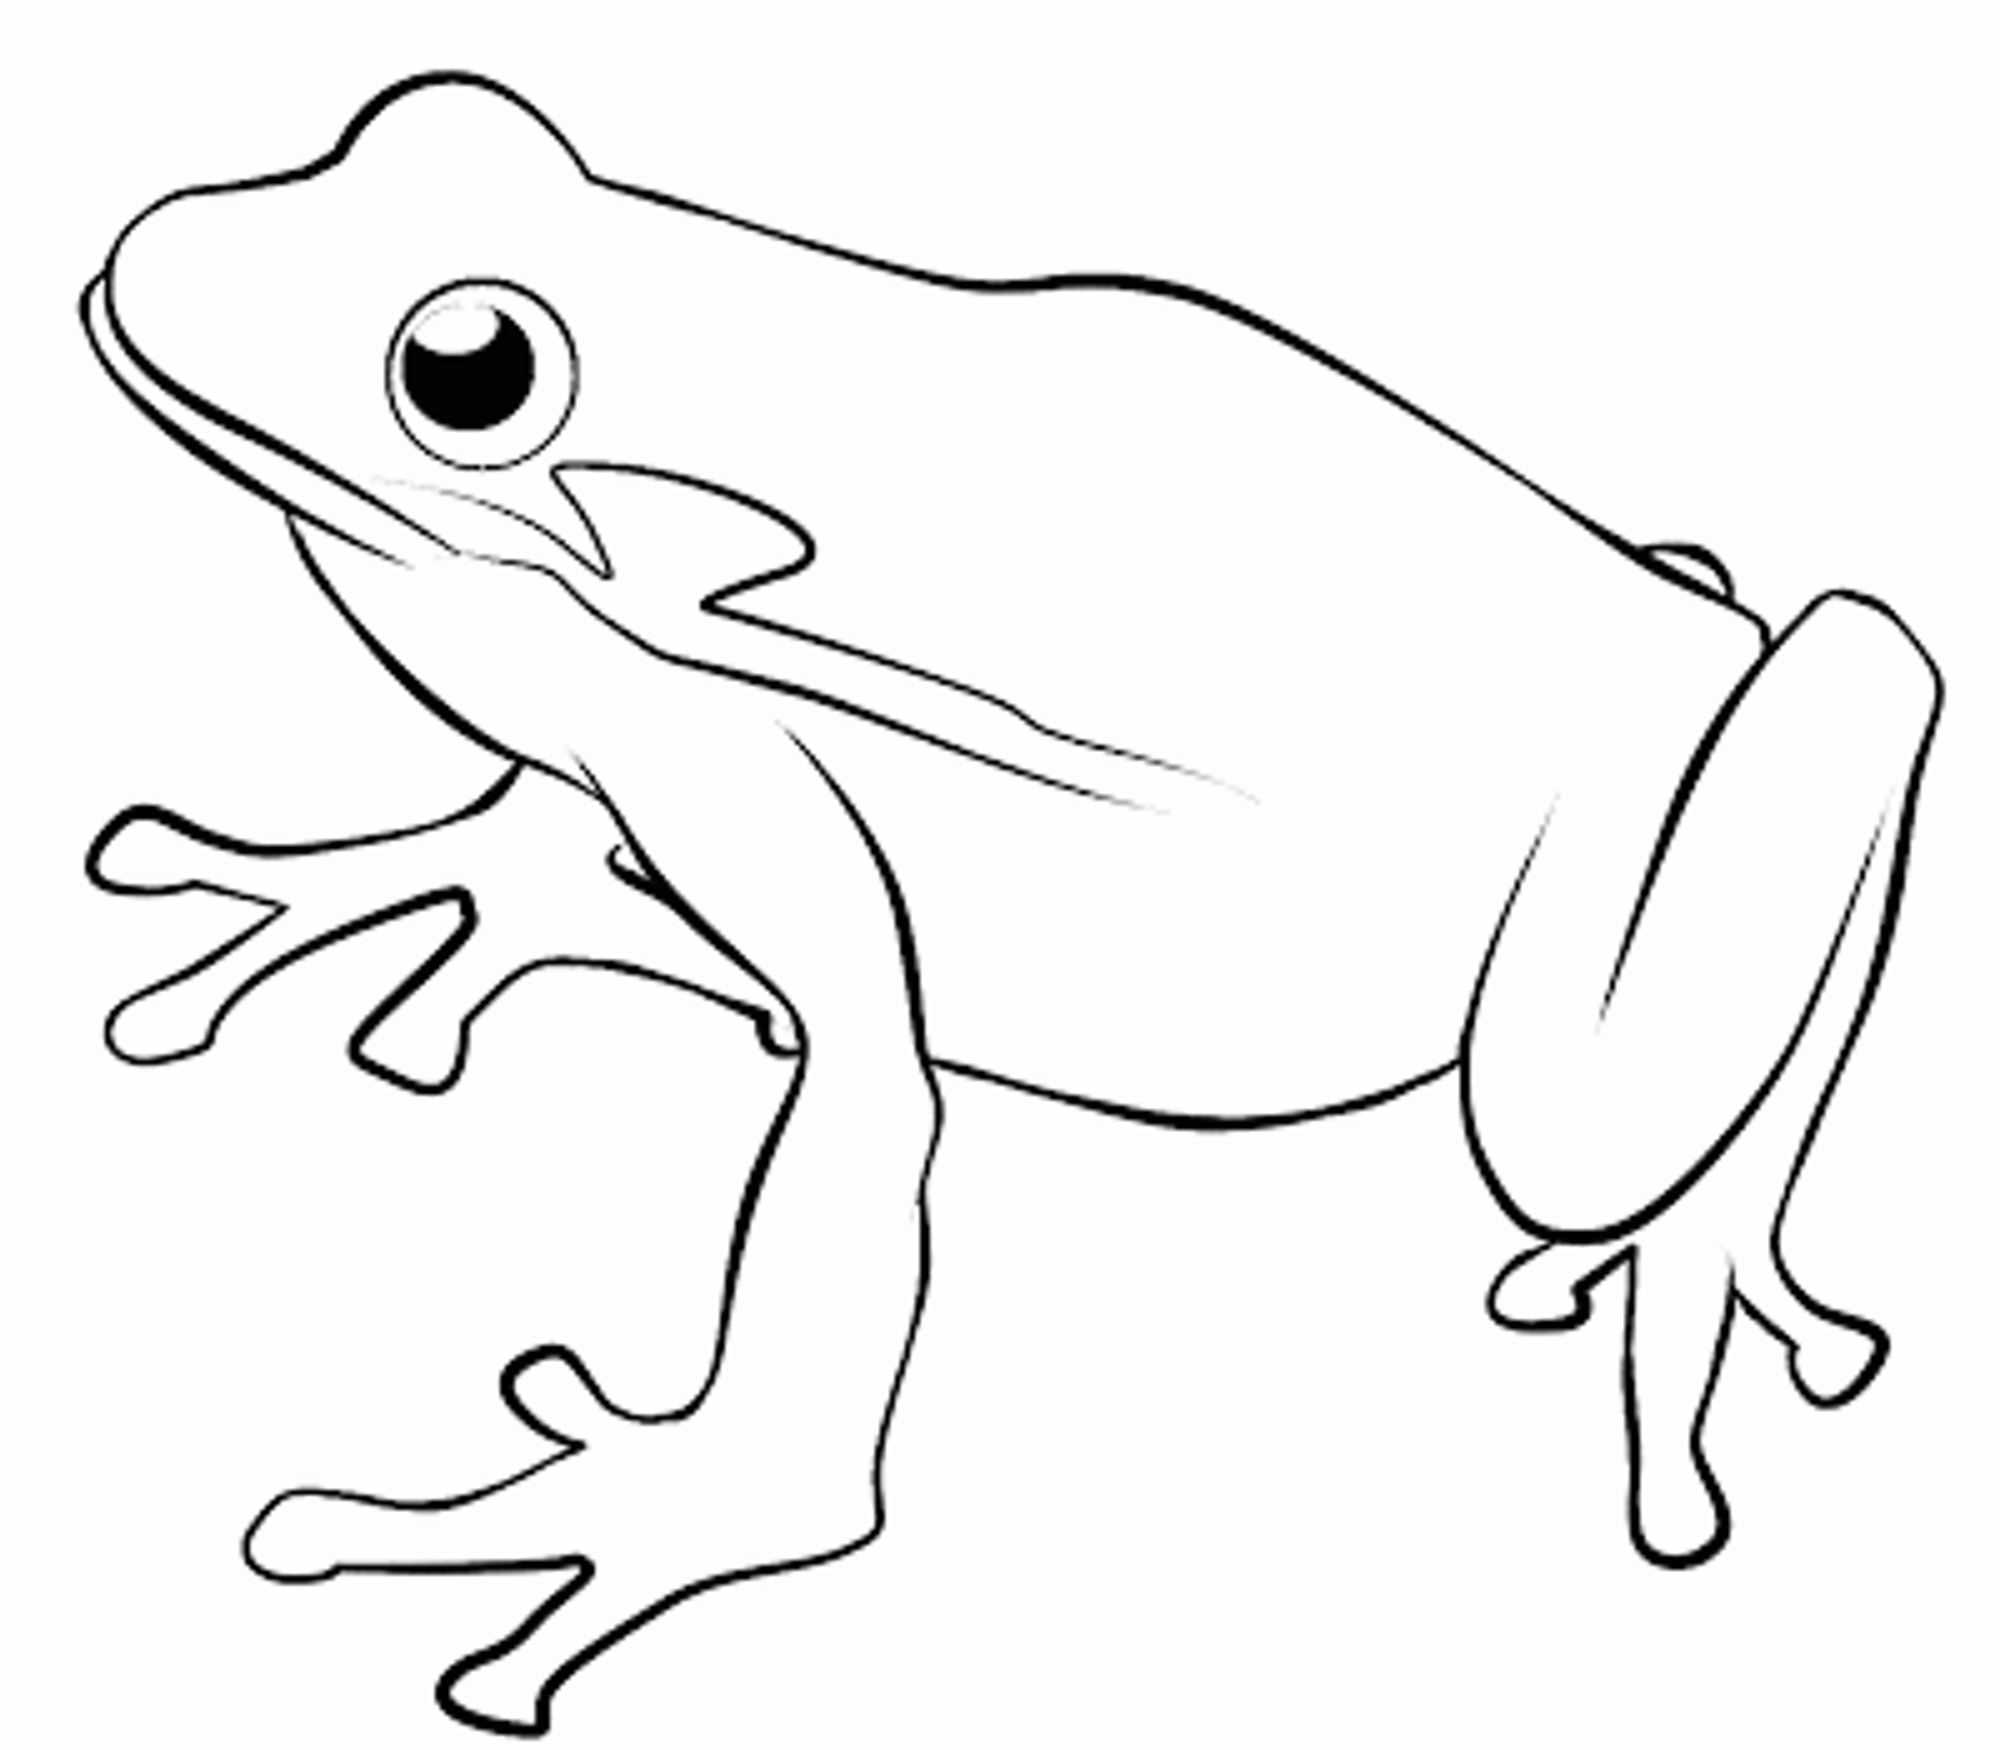 green tree frog coloring page green frog jump coloring page free frog coloring pages frog coloring tree green page